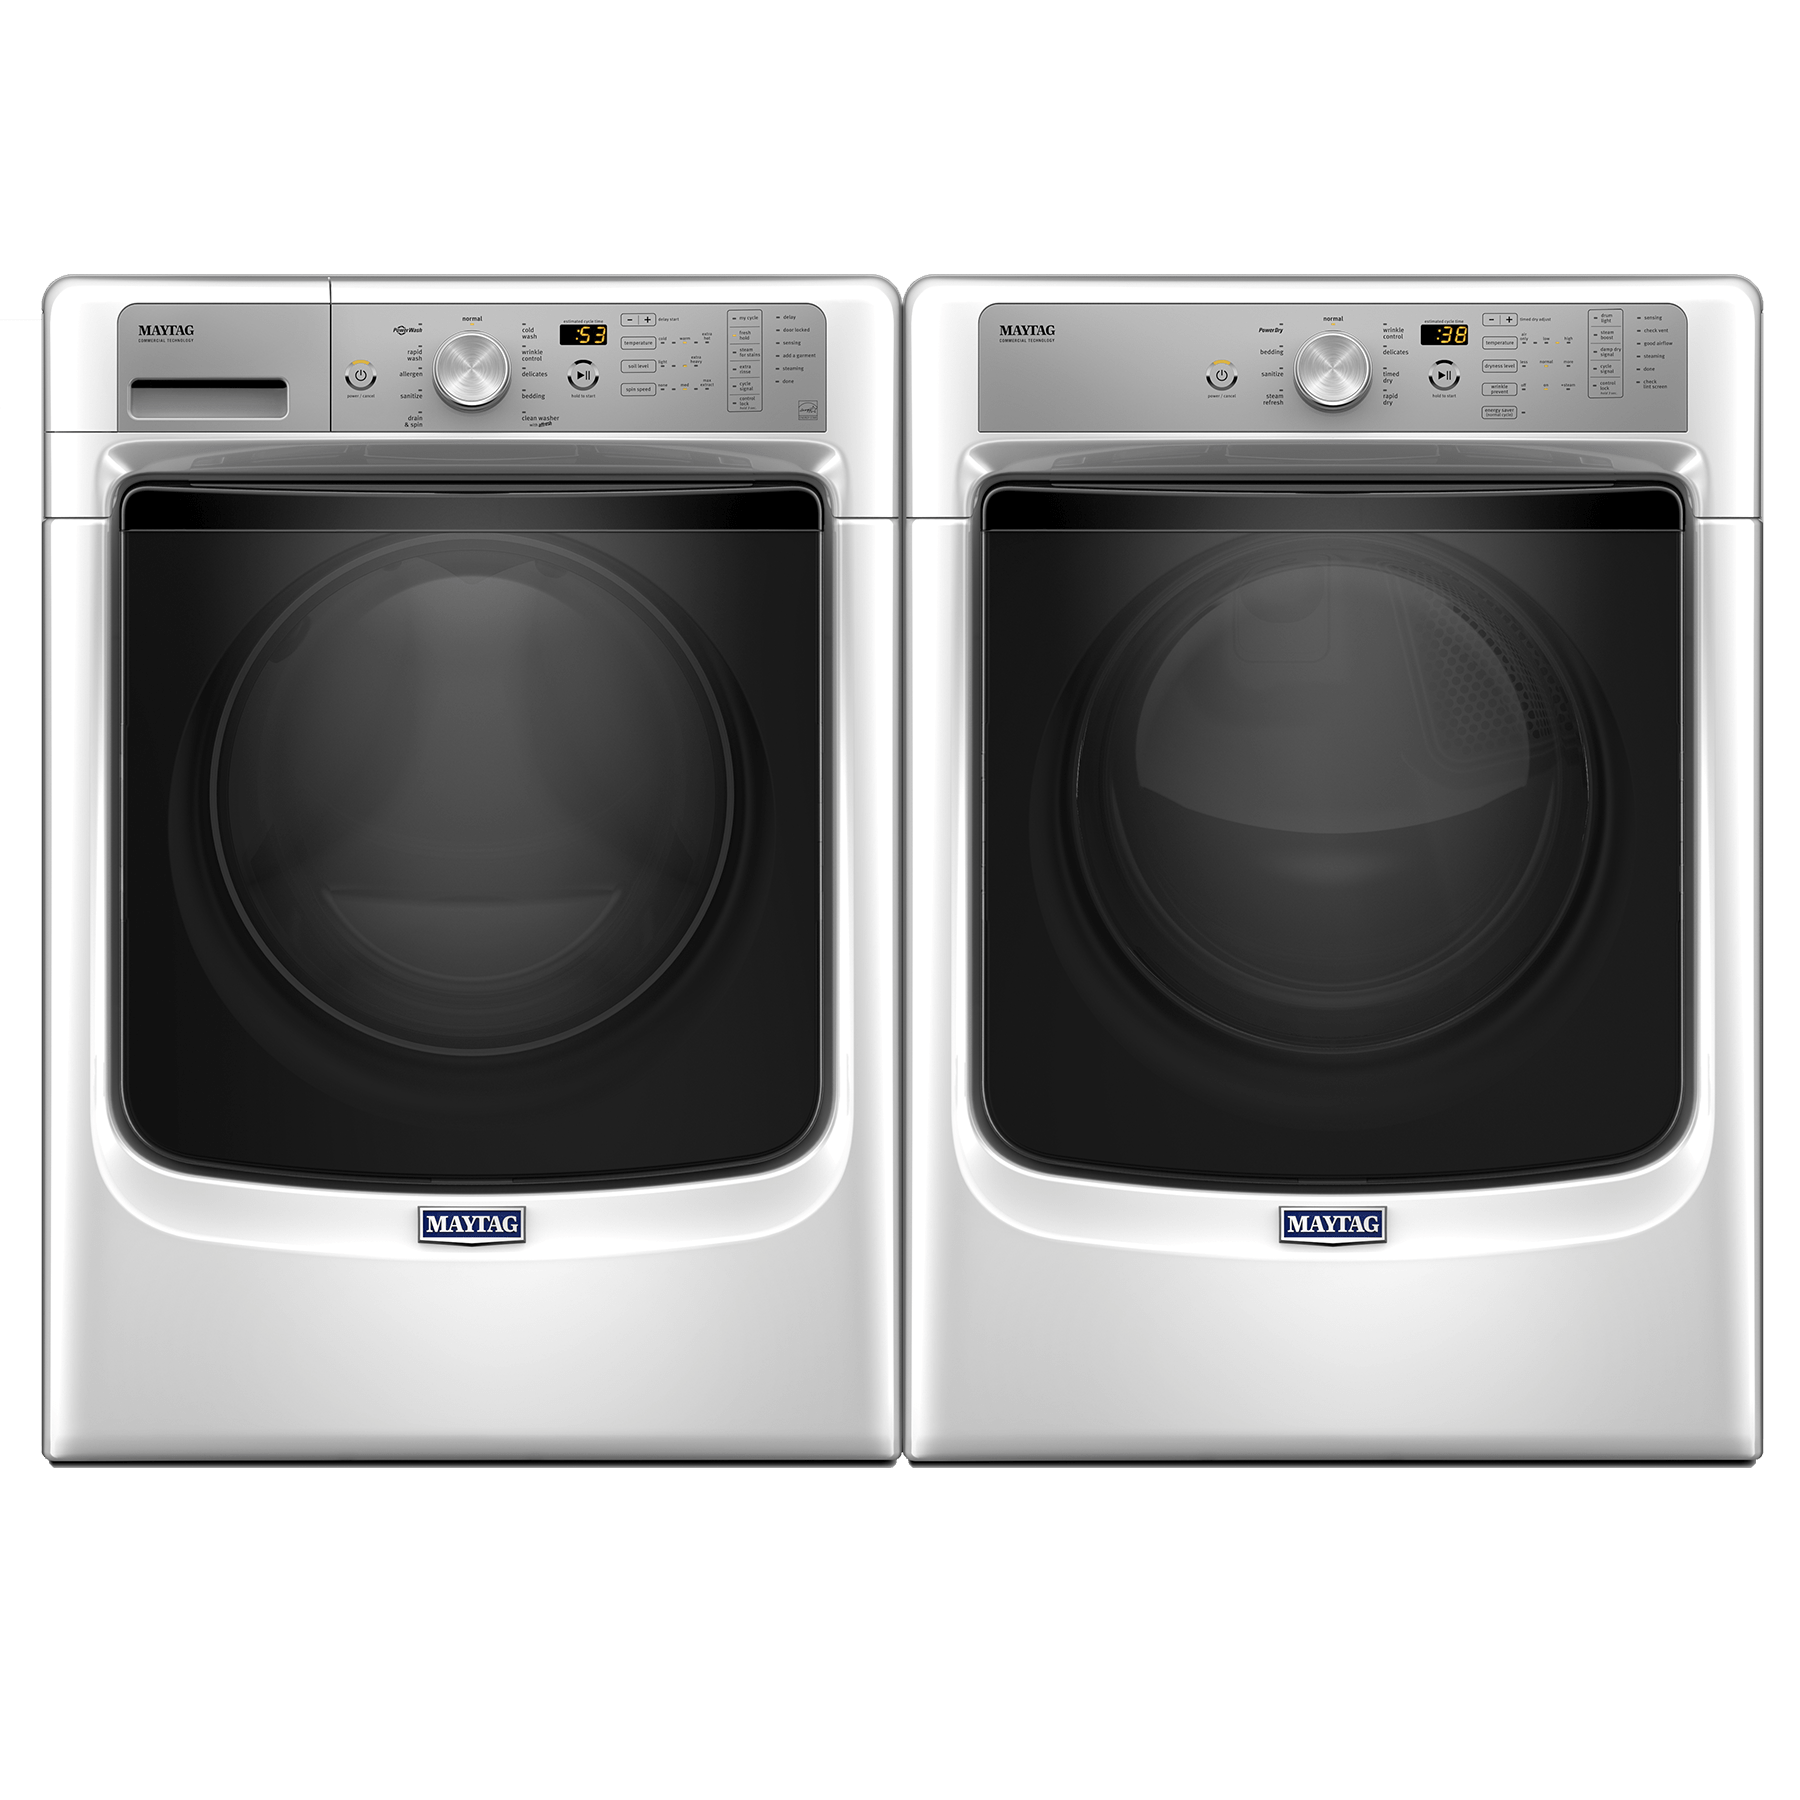 Dons Appliances Canonsburg Pa 15317 Pittsburgh Franke Independence Day  Buy 2 Free Cooker Hood Maytag Front Load Laundry Pair White Malaumed8200fw